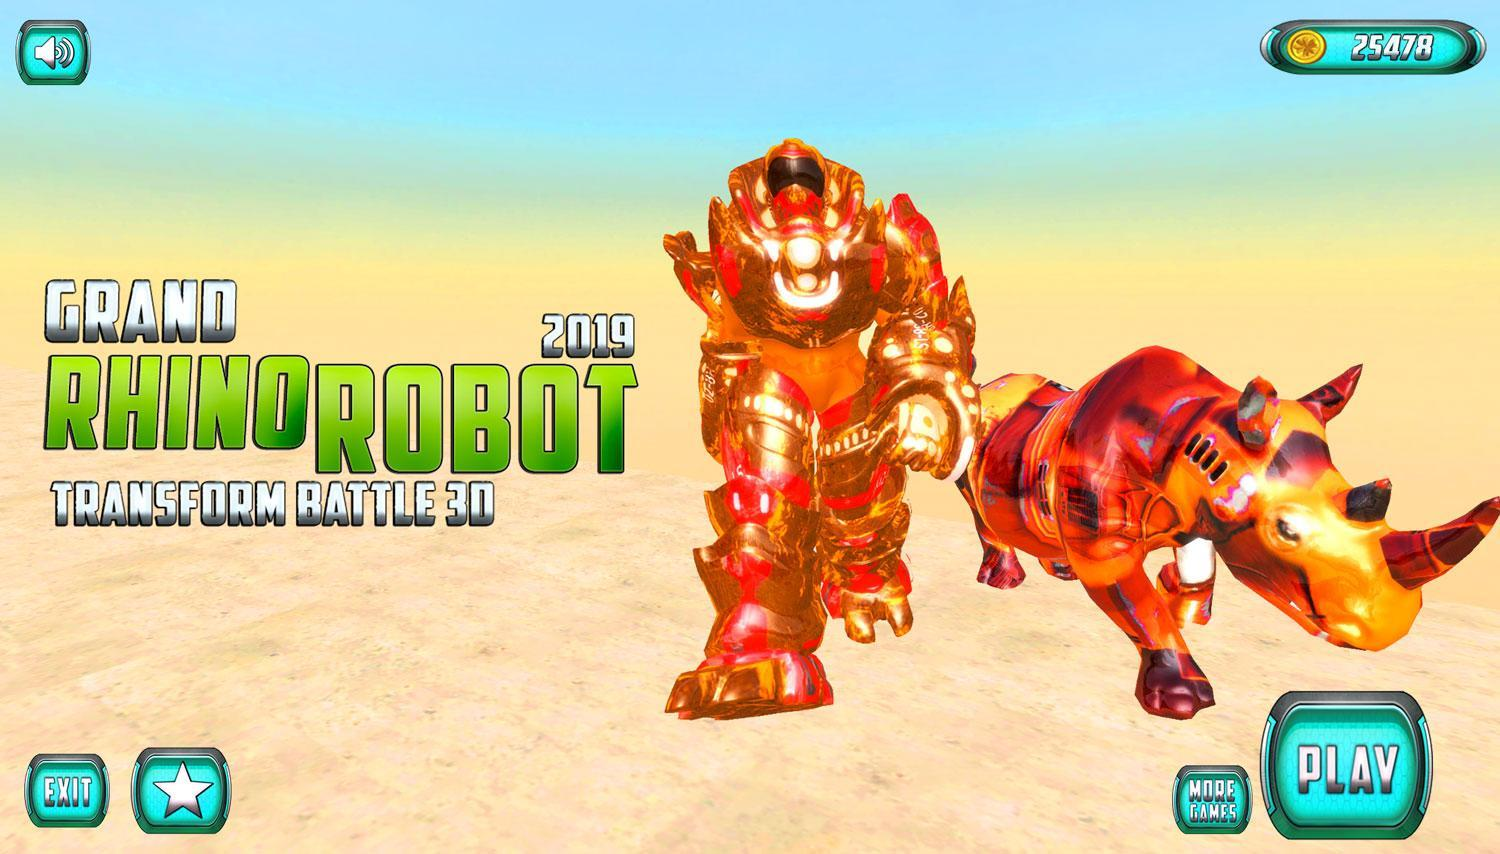 Grand US Rhino Robot City Battle for Android - APK Download